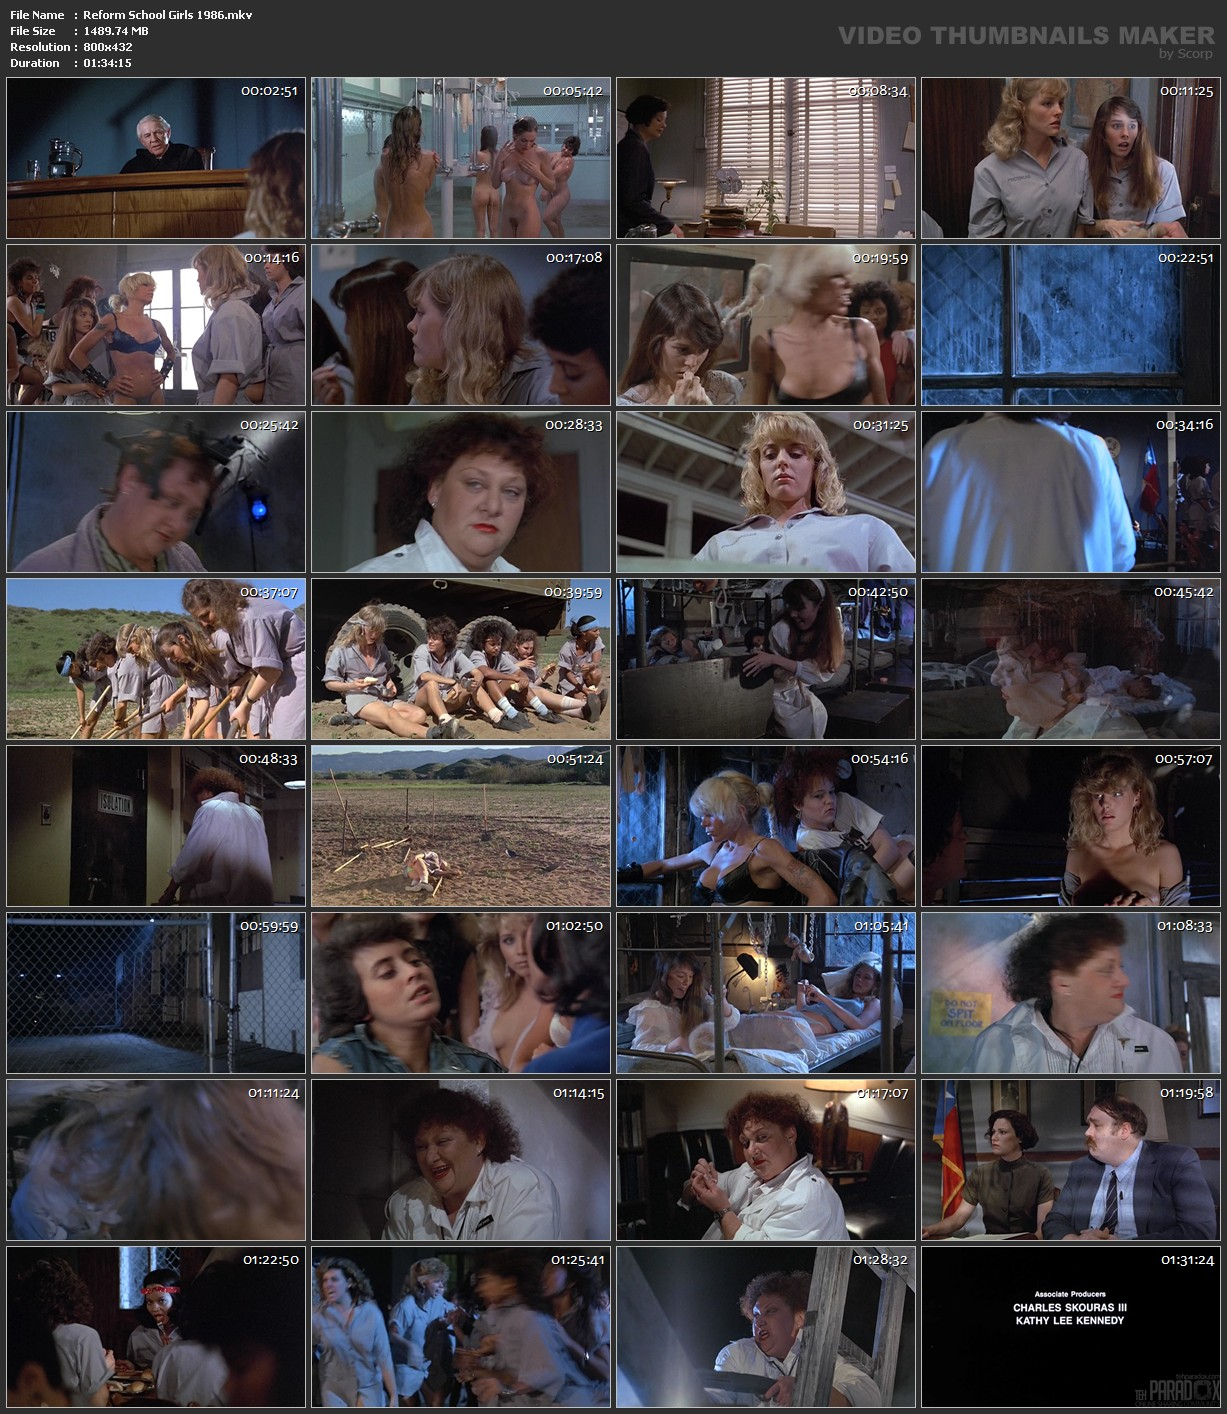 Reform School Girls 1986 | Download movie